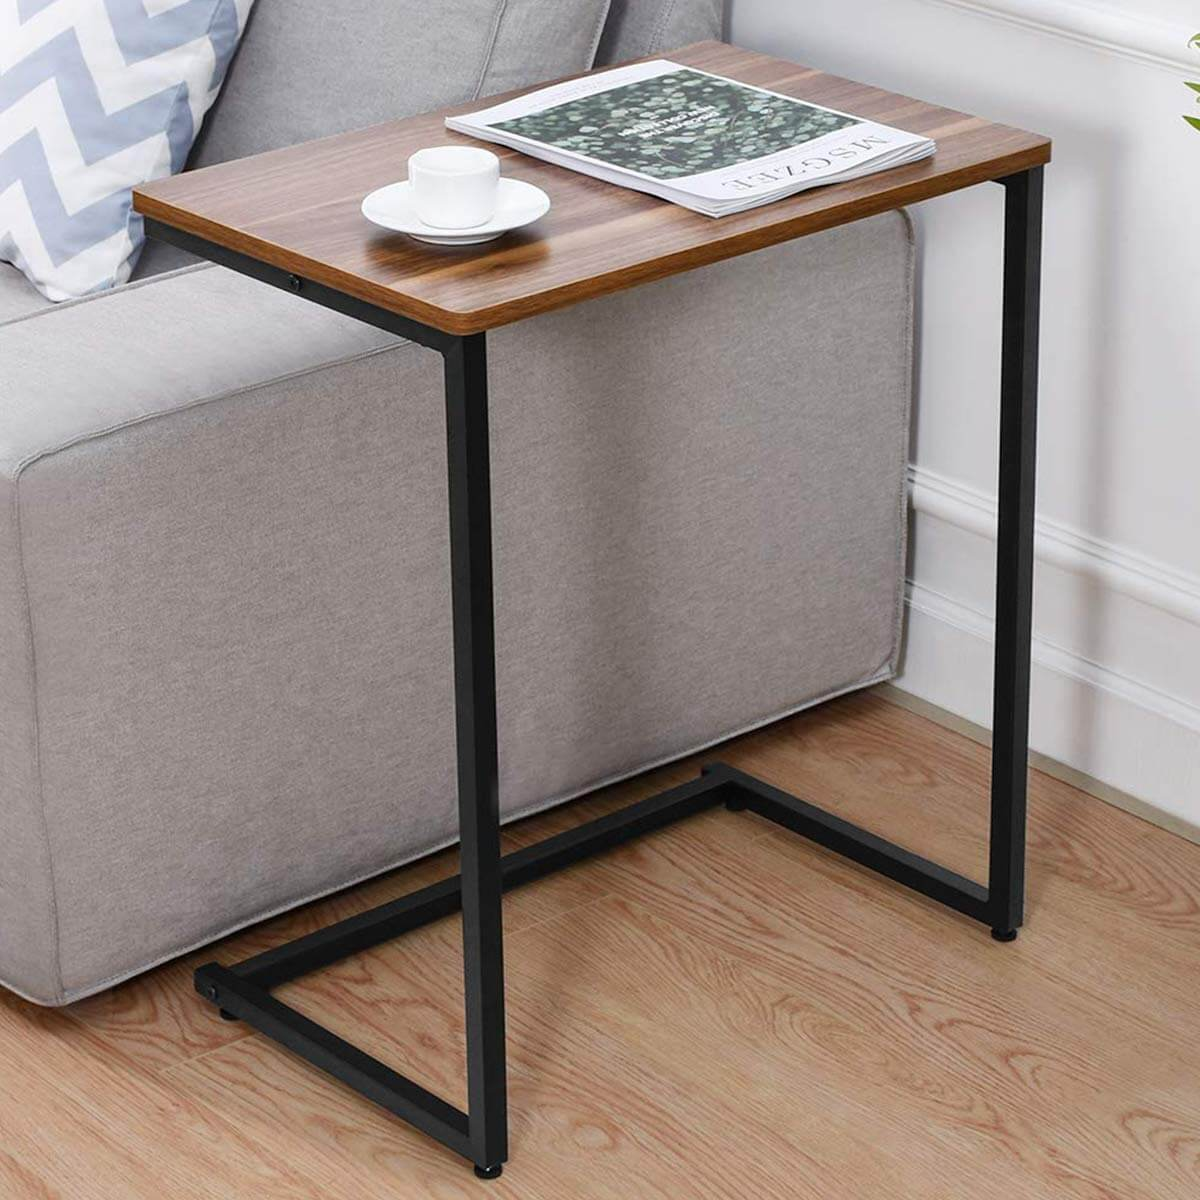 C Shaped desks for small spaces